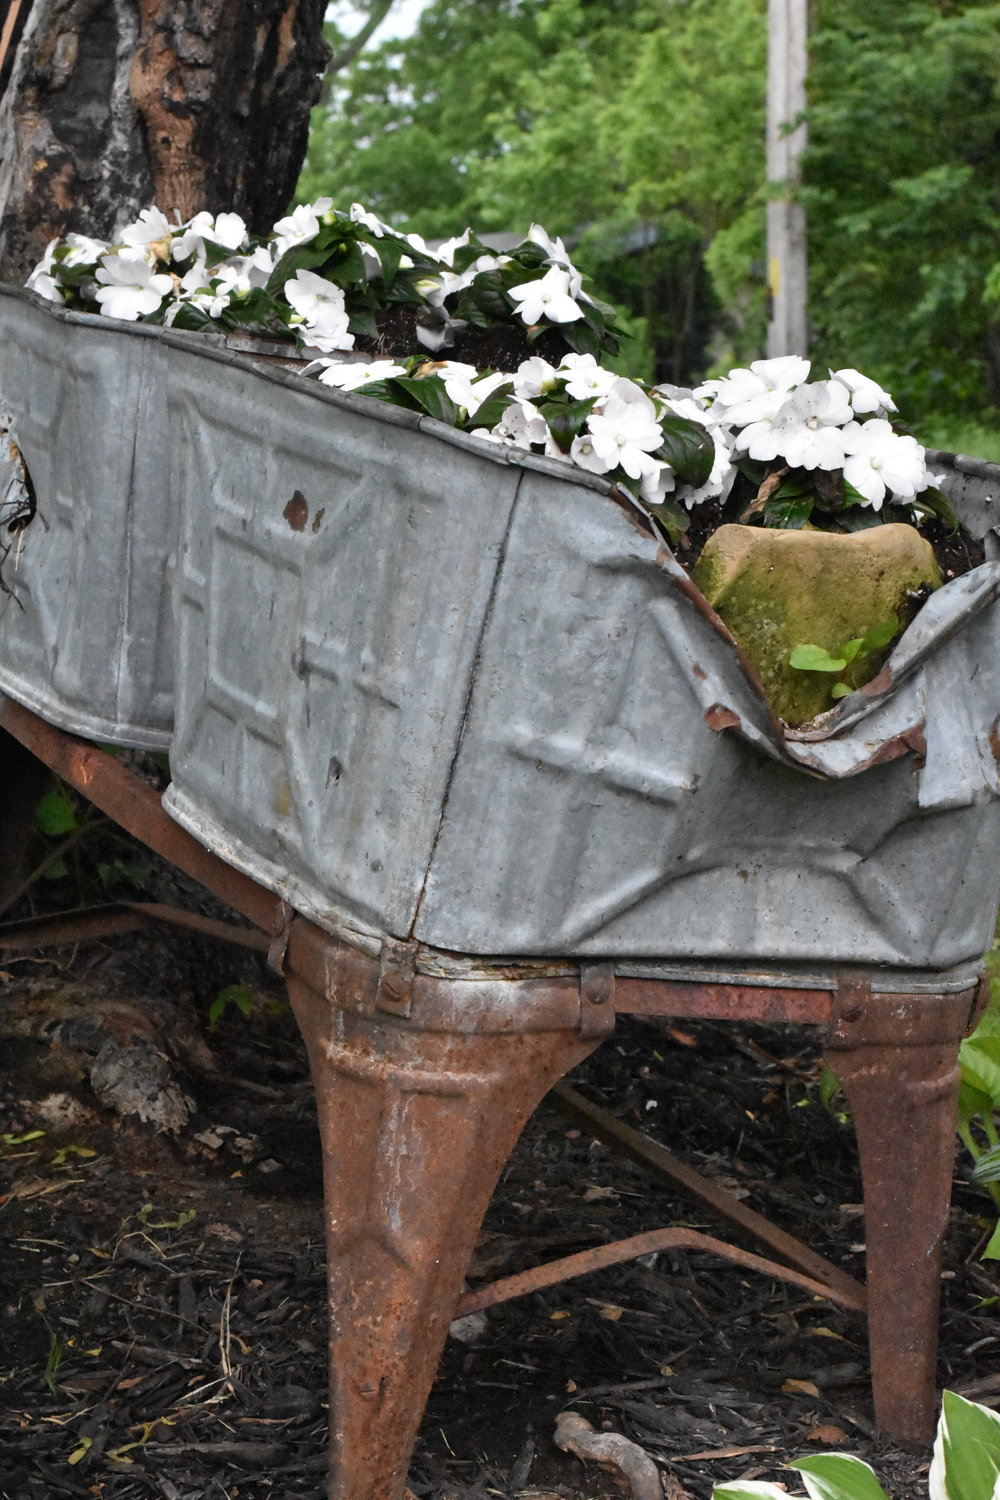 old washtubs used for flowers in the garden | Rocky Hedge Farm